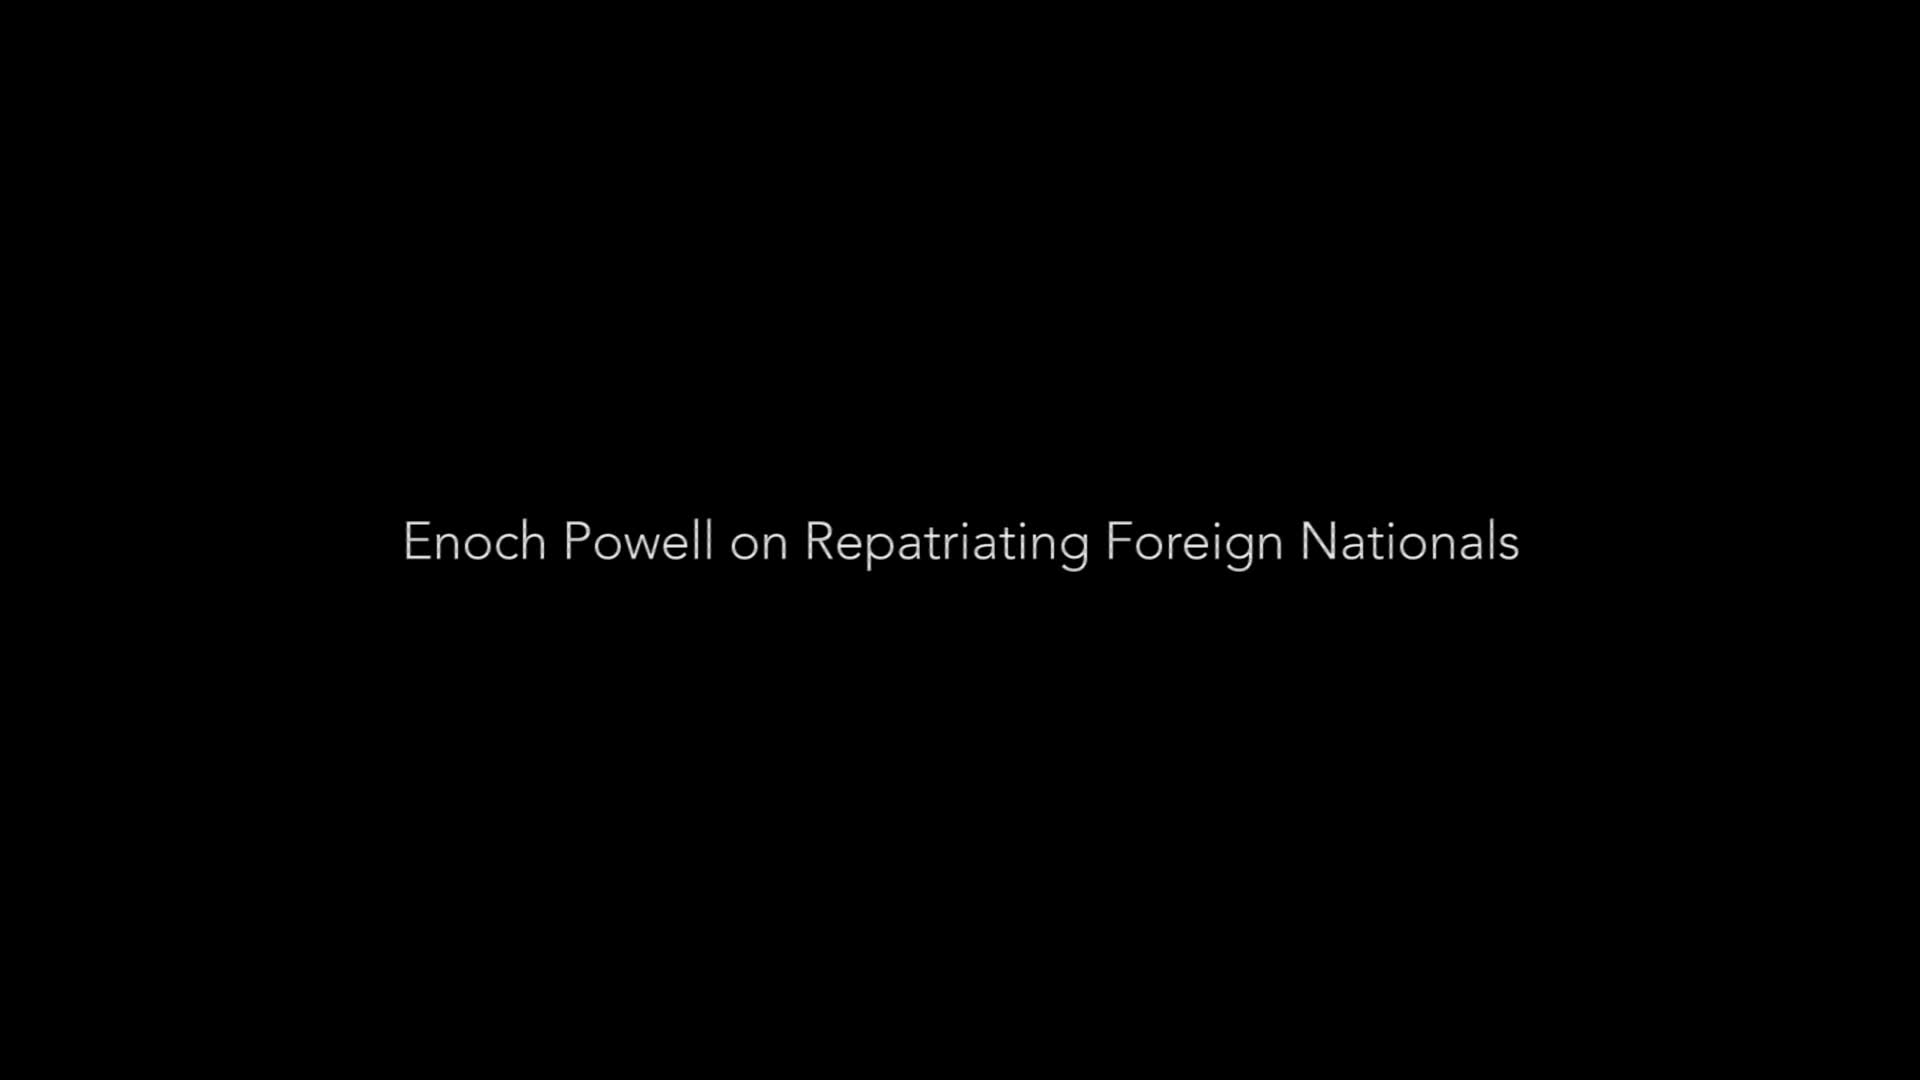 Enoch Powell Interview on Repatriating Migrants (1976)